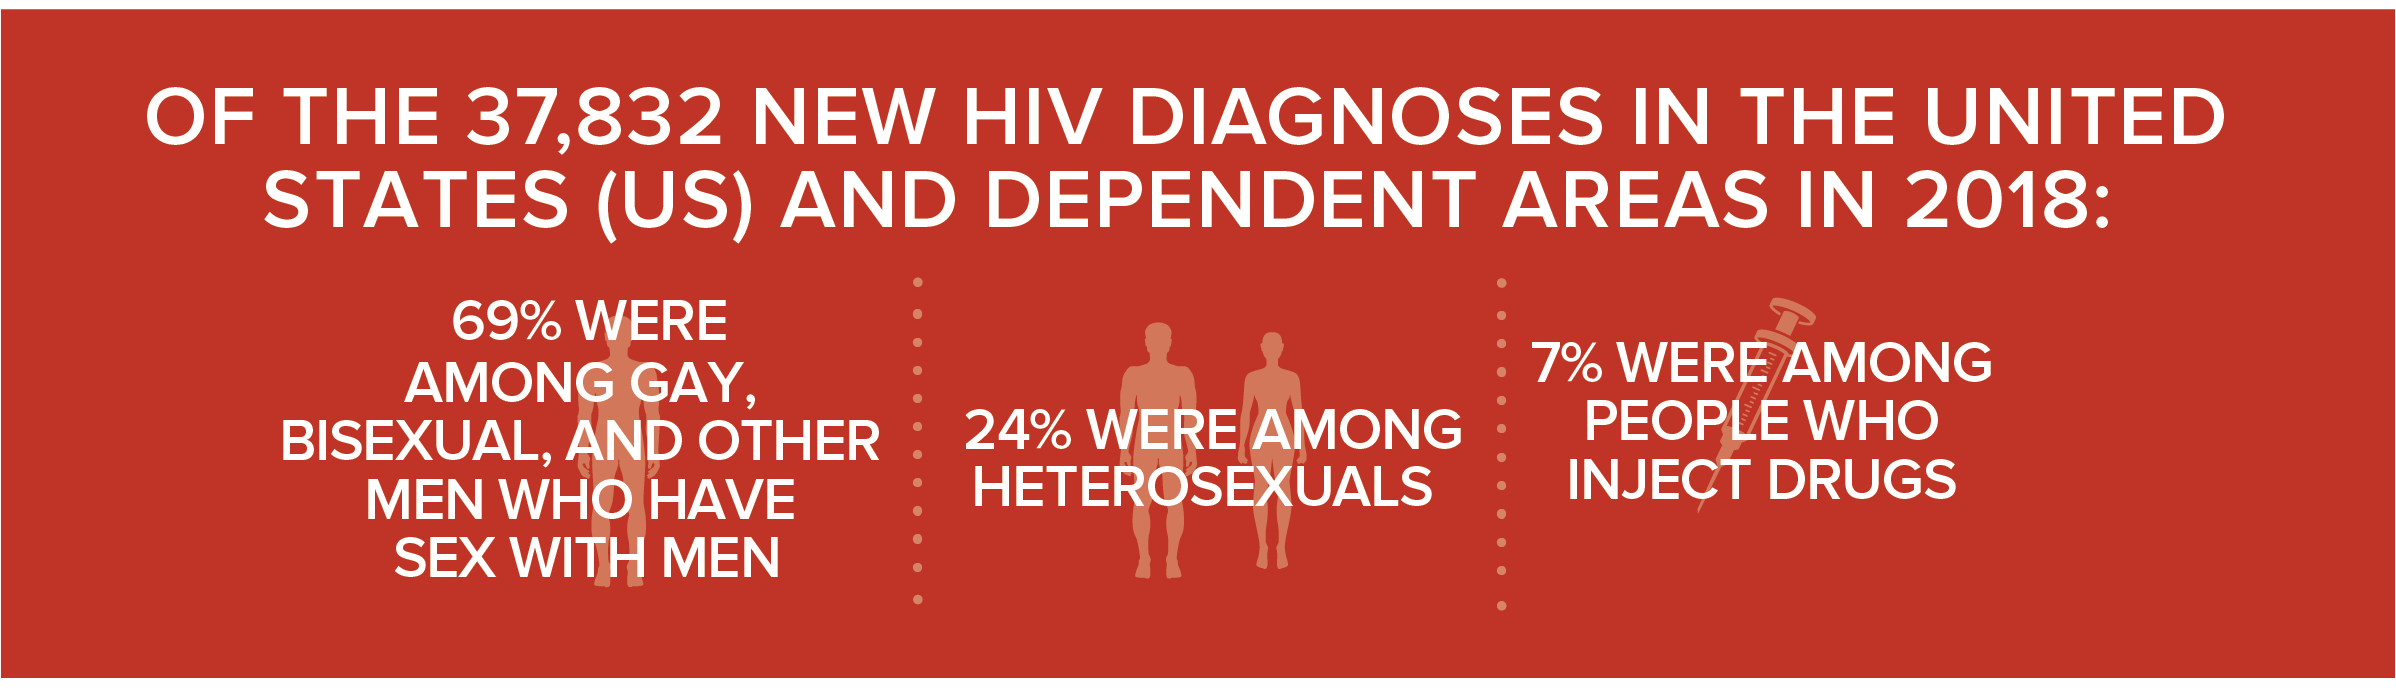 This banner shows 69% of the 37,832 new HIV diagnoses in the United States and dependent areas were among gay and bisexual men, 24% were among heterosexuals, and 7% were among people who inject drugs.